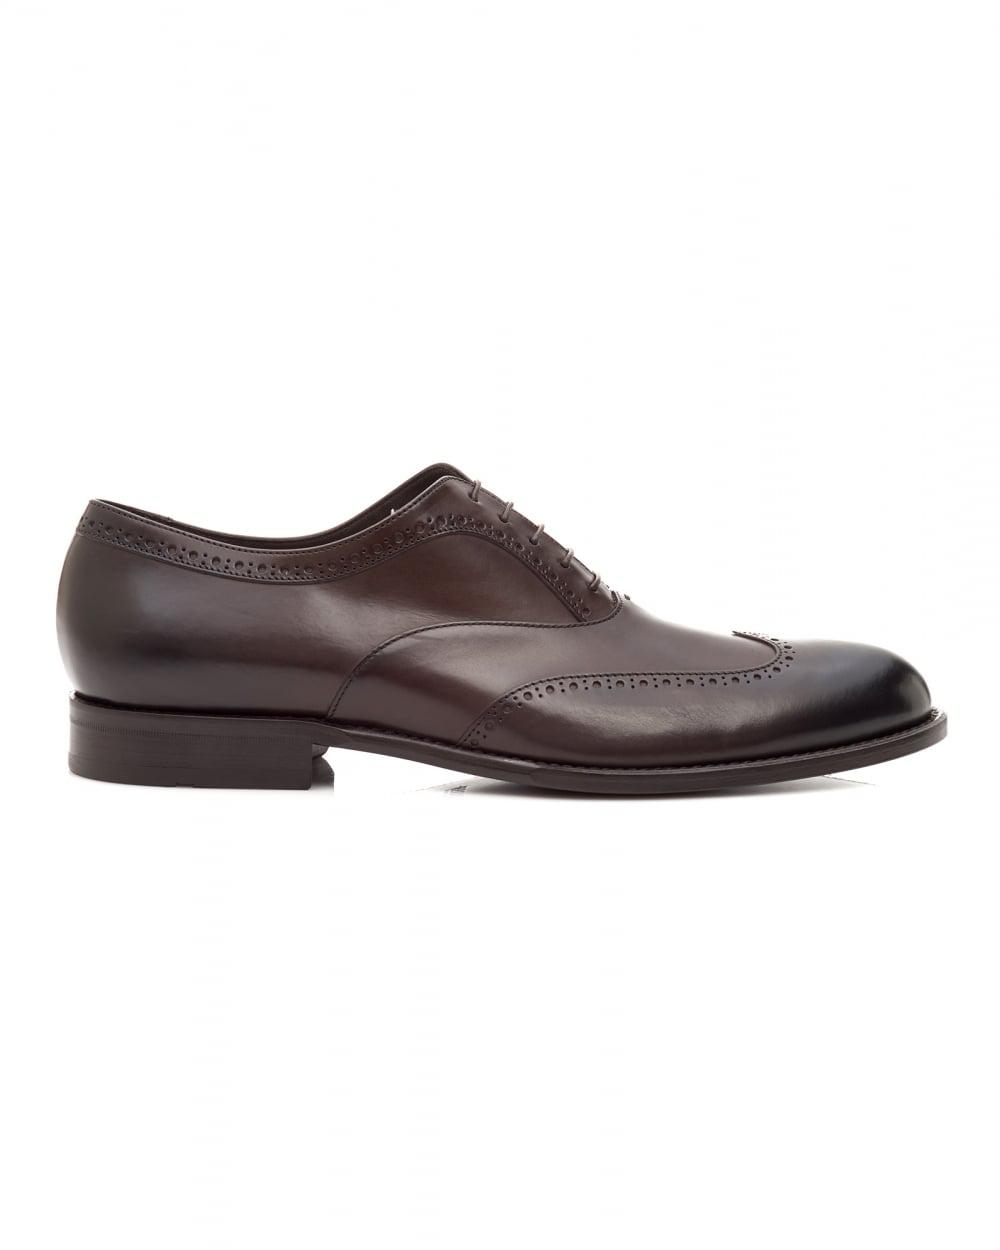 Oxford shoes in smooth leather BOSS fx76h4bno